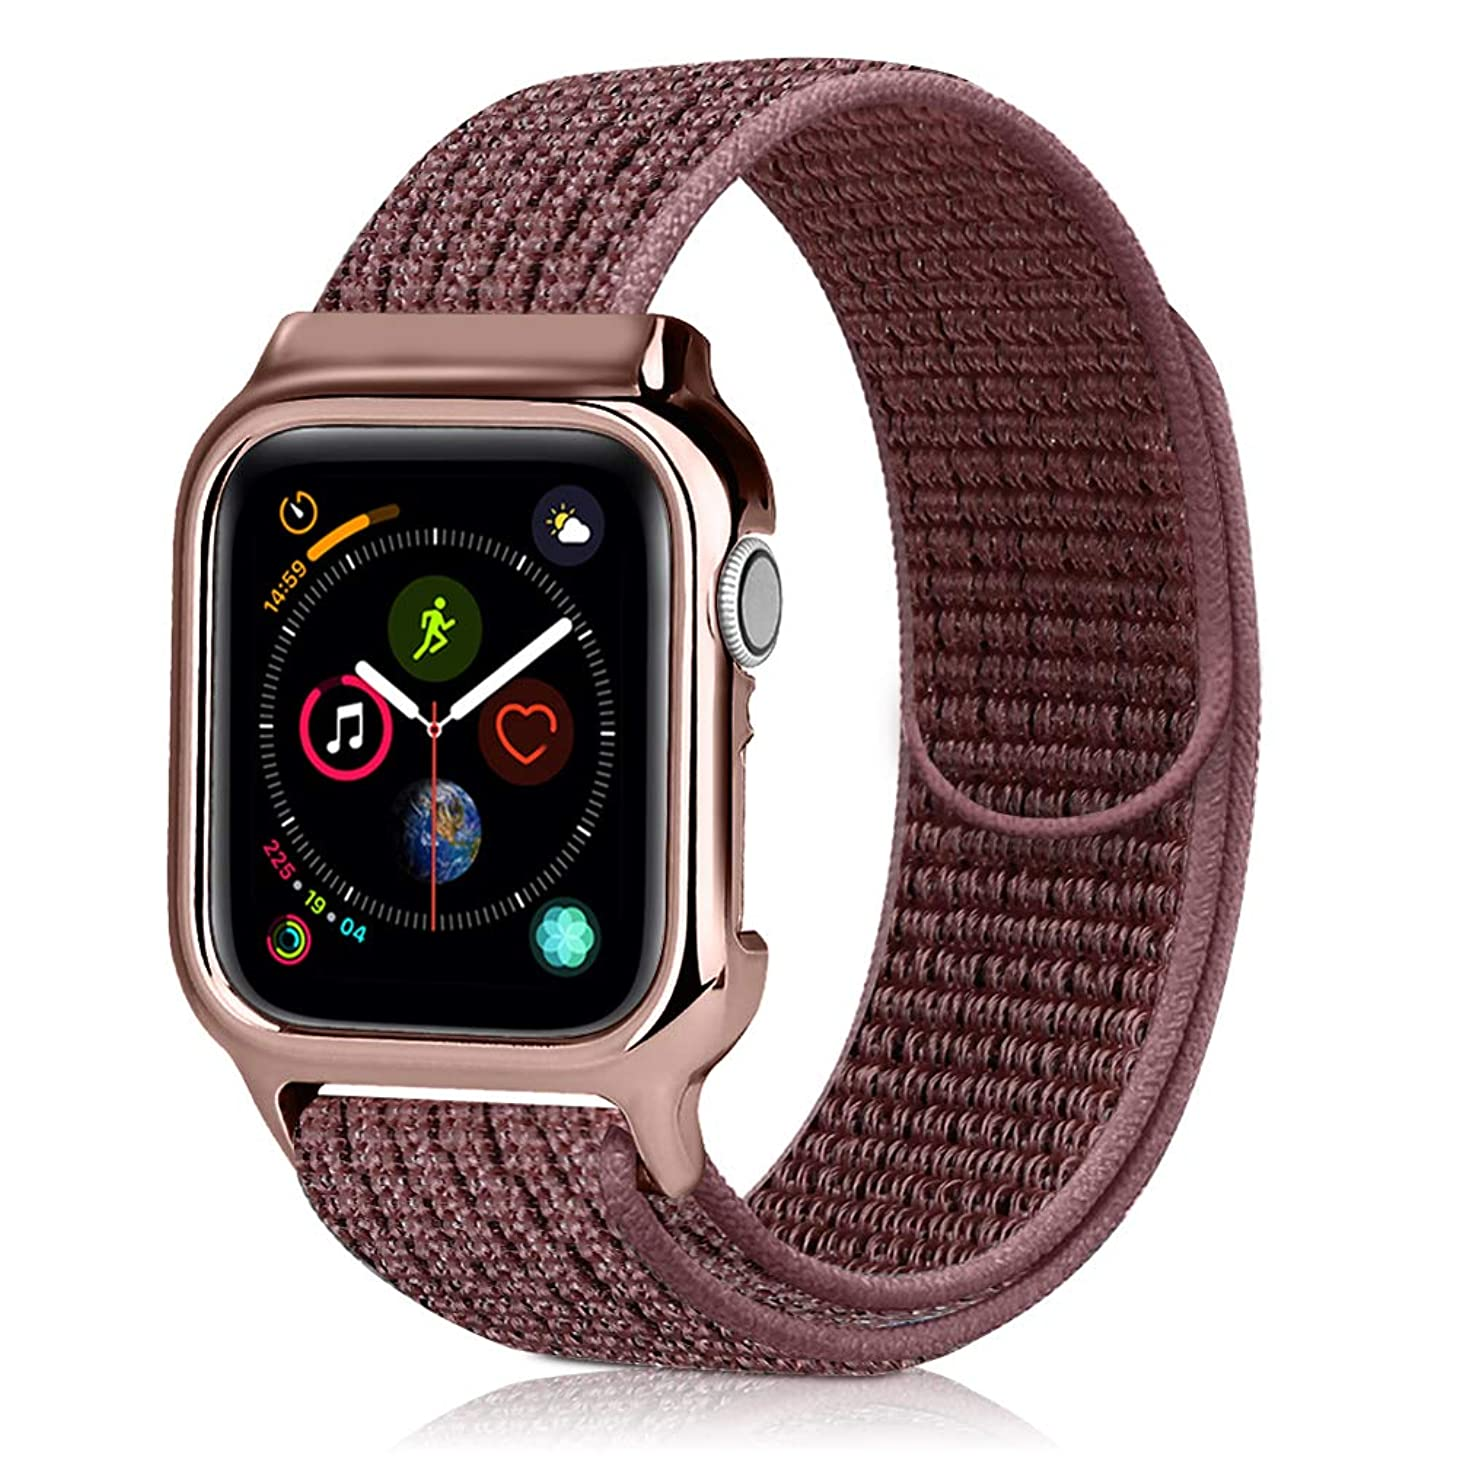 KSOM Compatible with Apple Watch Band with Case 40mm 44mm, Soft Lightweight Breathable Nylon Sport Loop Replacement Wristband with PC Protective Cover Frame for iWatch Series 4 (Smokey Mauve, 40mm)